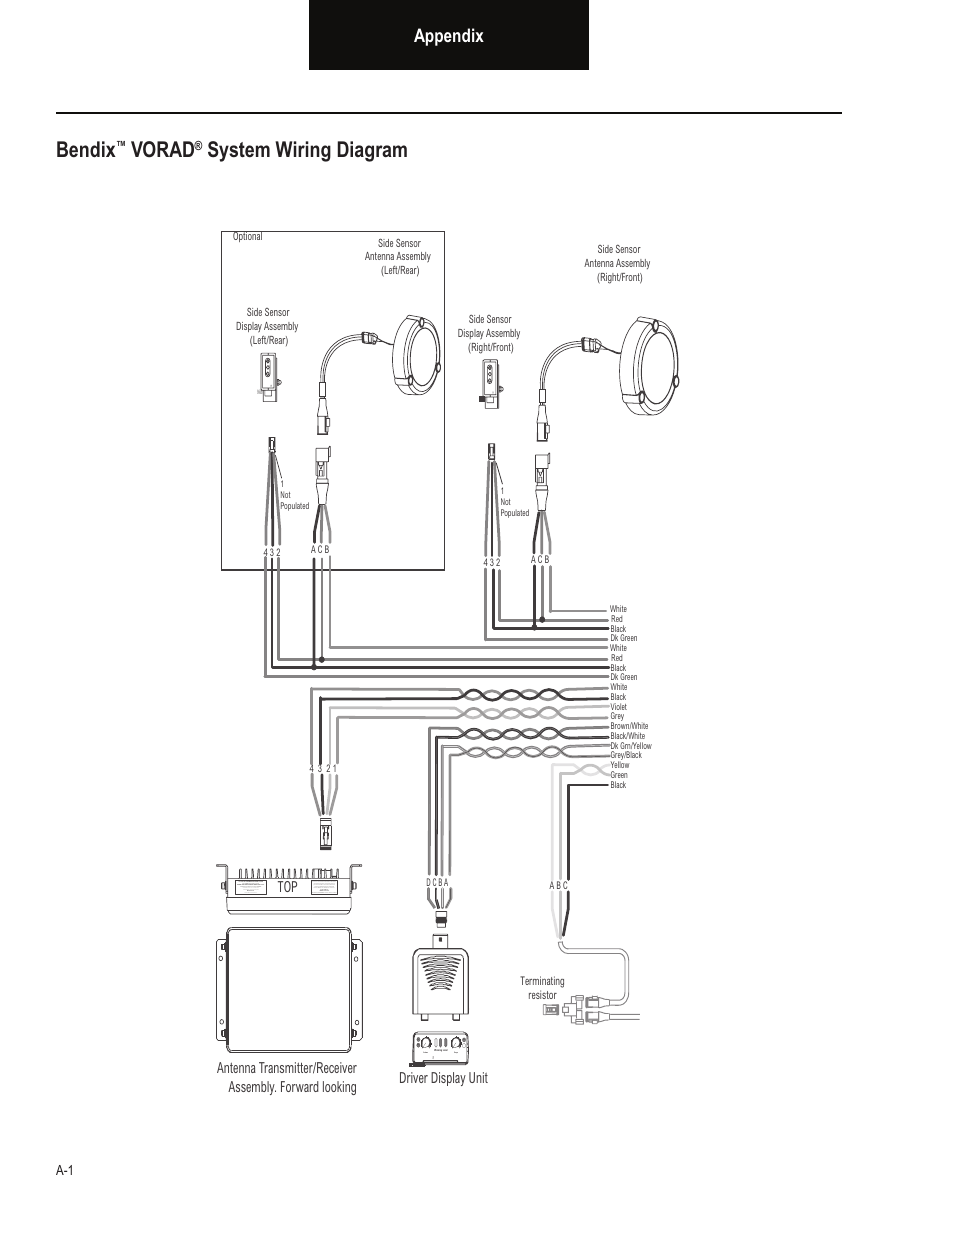 Wabco Trailer Abs Brake System Diagram on meritor wabco trailer abs troubleshooting